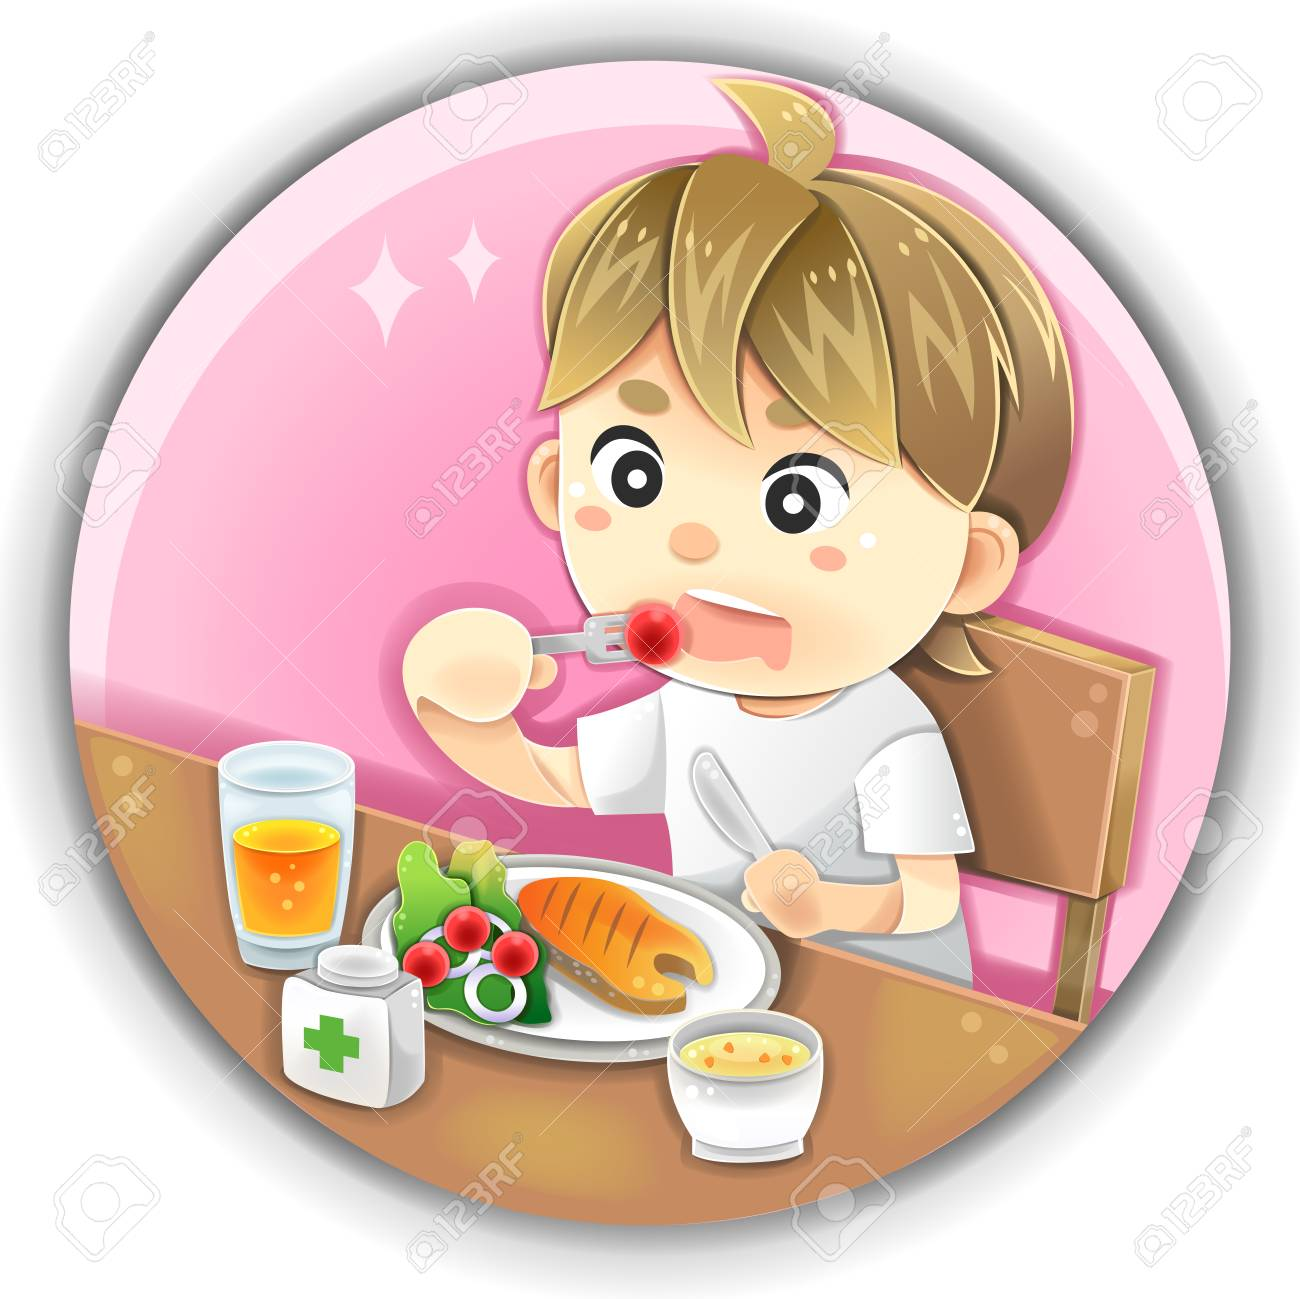 Highly Detail Illustration Cartoon Male Character Is Eating Healthy Royalty Free Cliparts Vectors And Stock Illustration Image 48486478